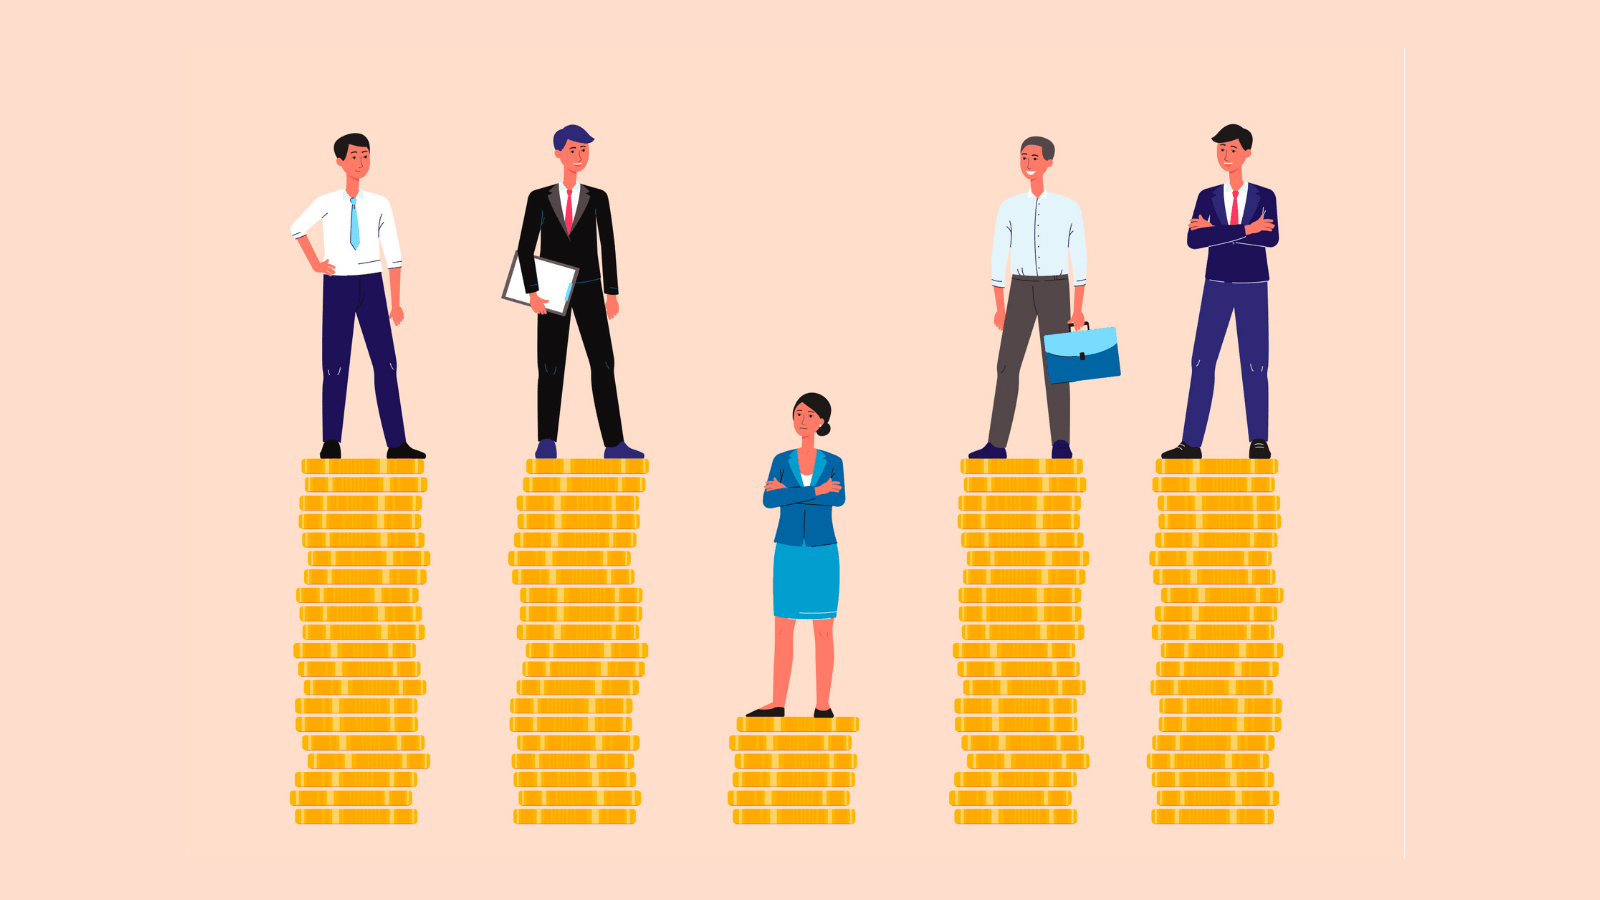 Is the Gender Pay Gap still evident in the Modern-Day Working World?